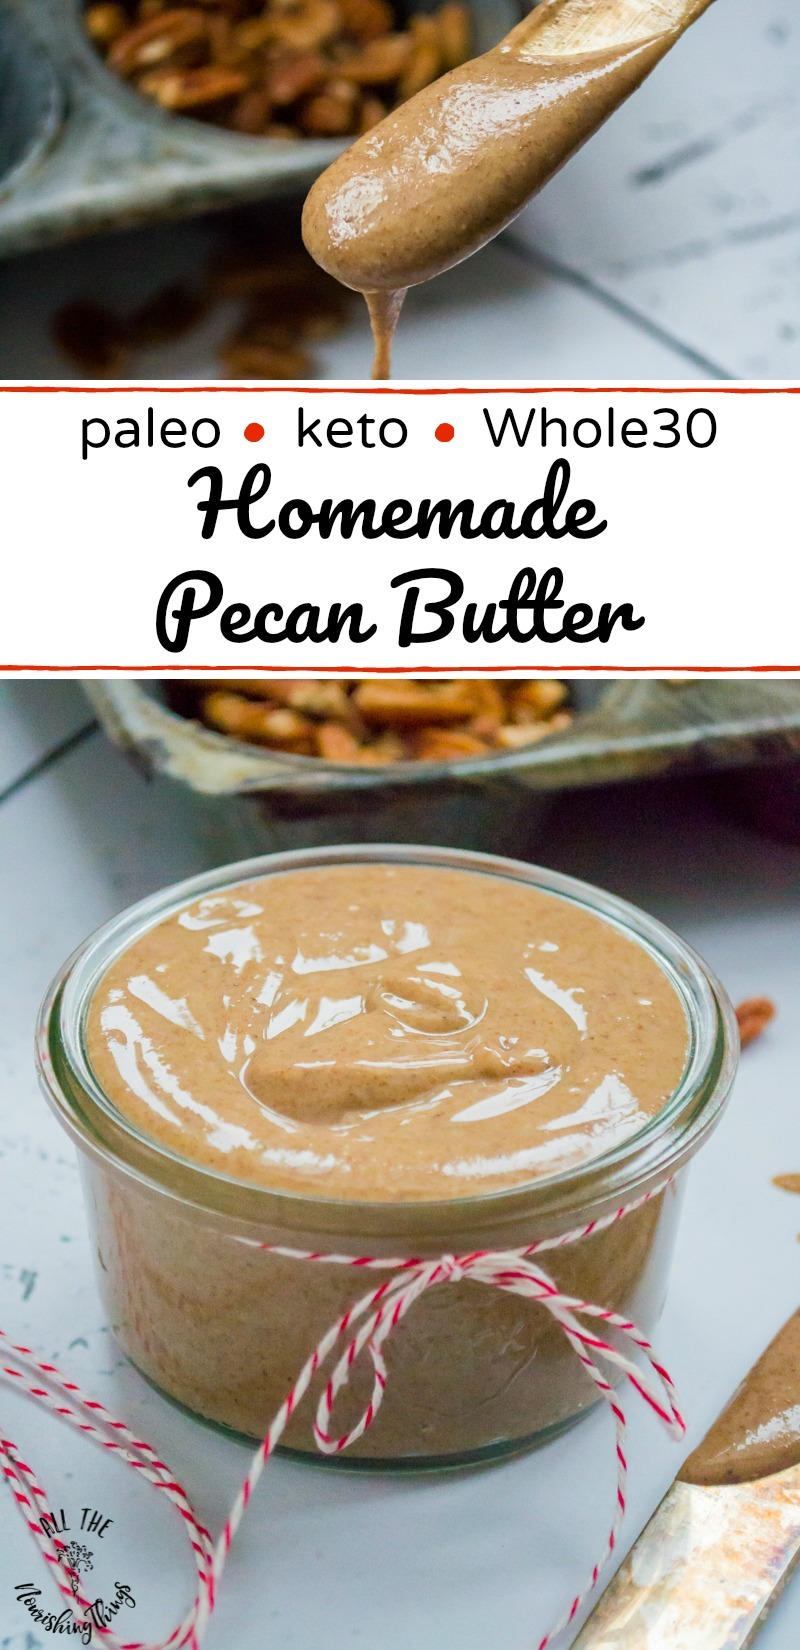 collage image of jar of homemade pecan butter with text overlay